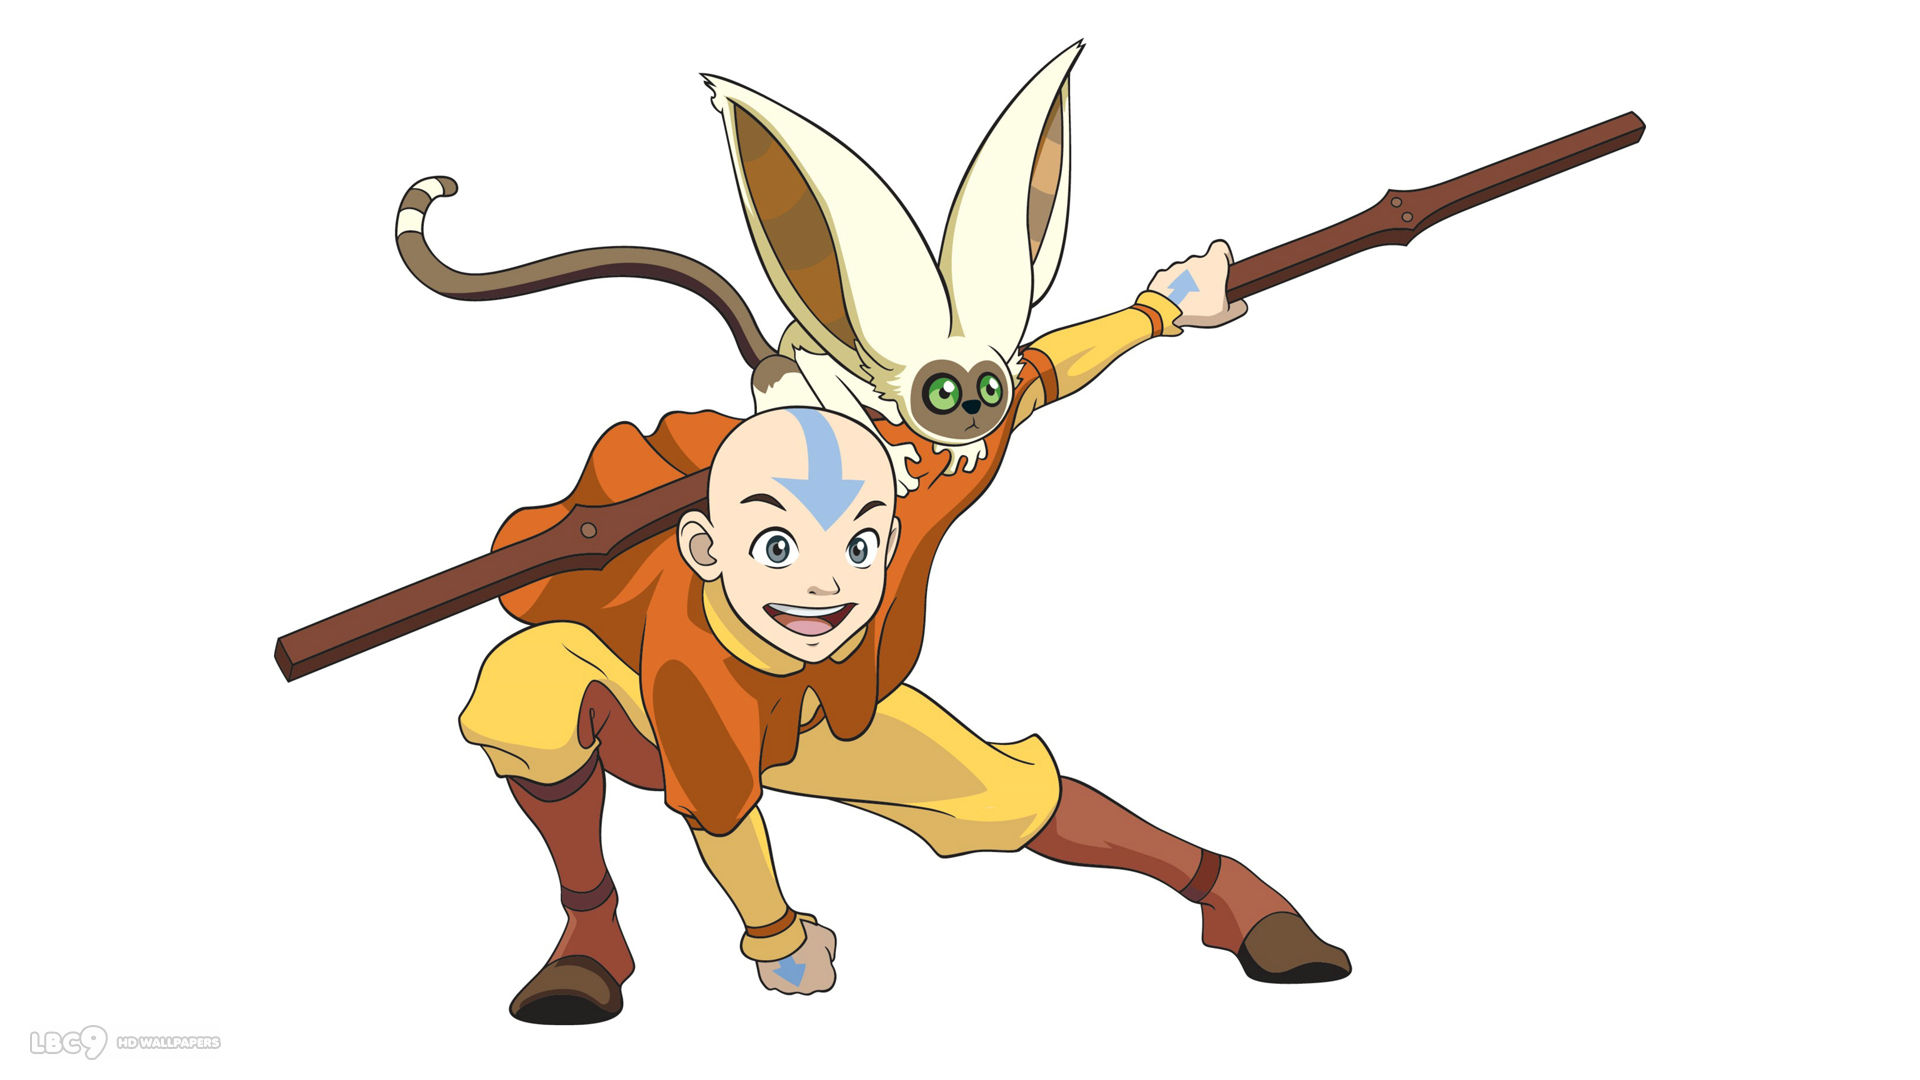 Free Home Cartoon Aang Avatar The Last Airbender